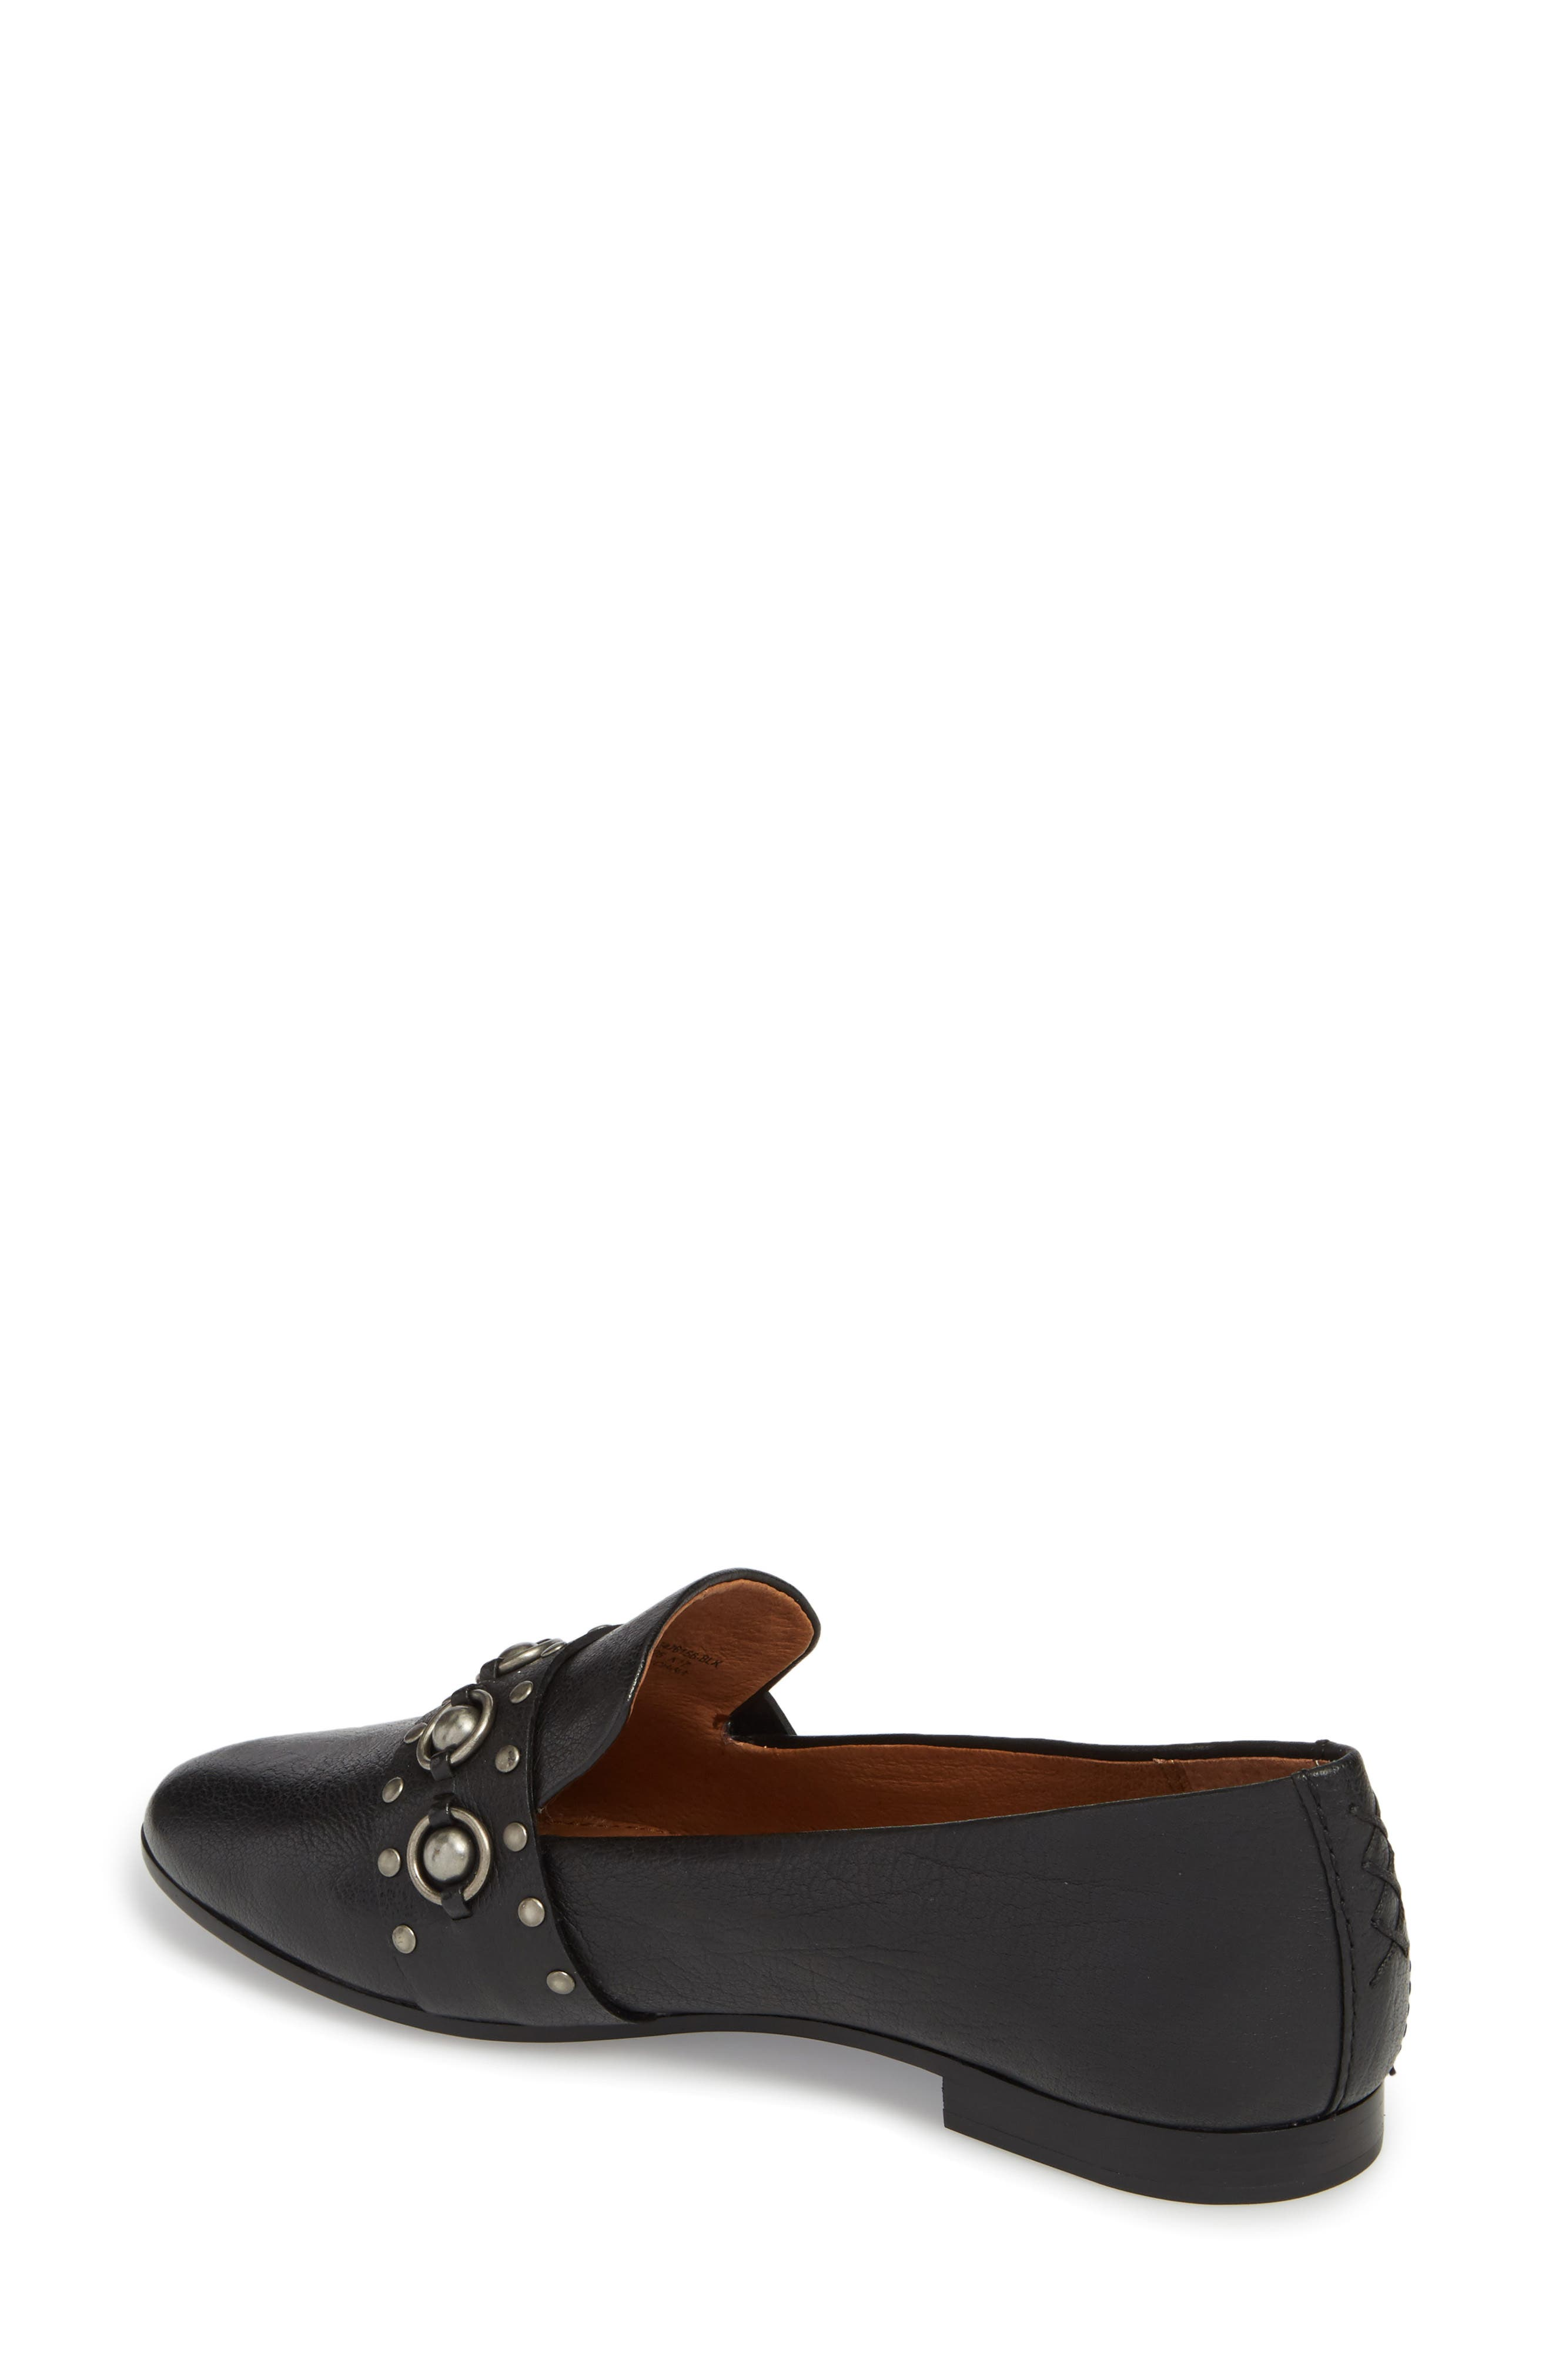 Terri Stud Loafer,                             Alternate thumbnail 2, color,                             Black Leather